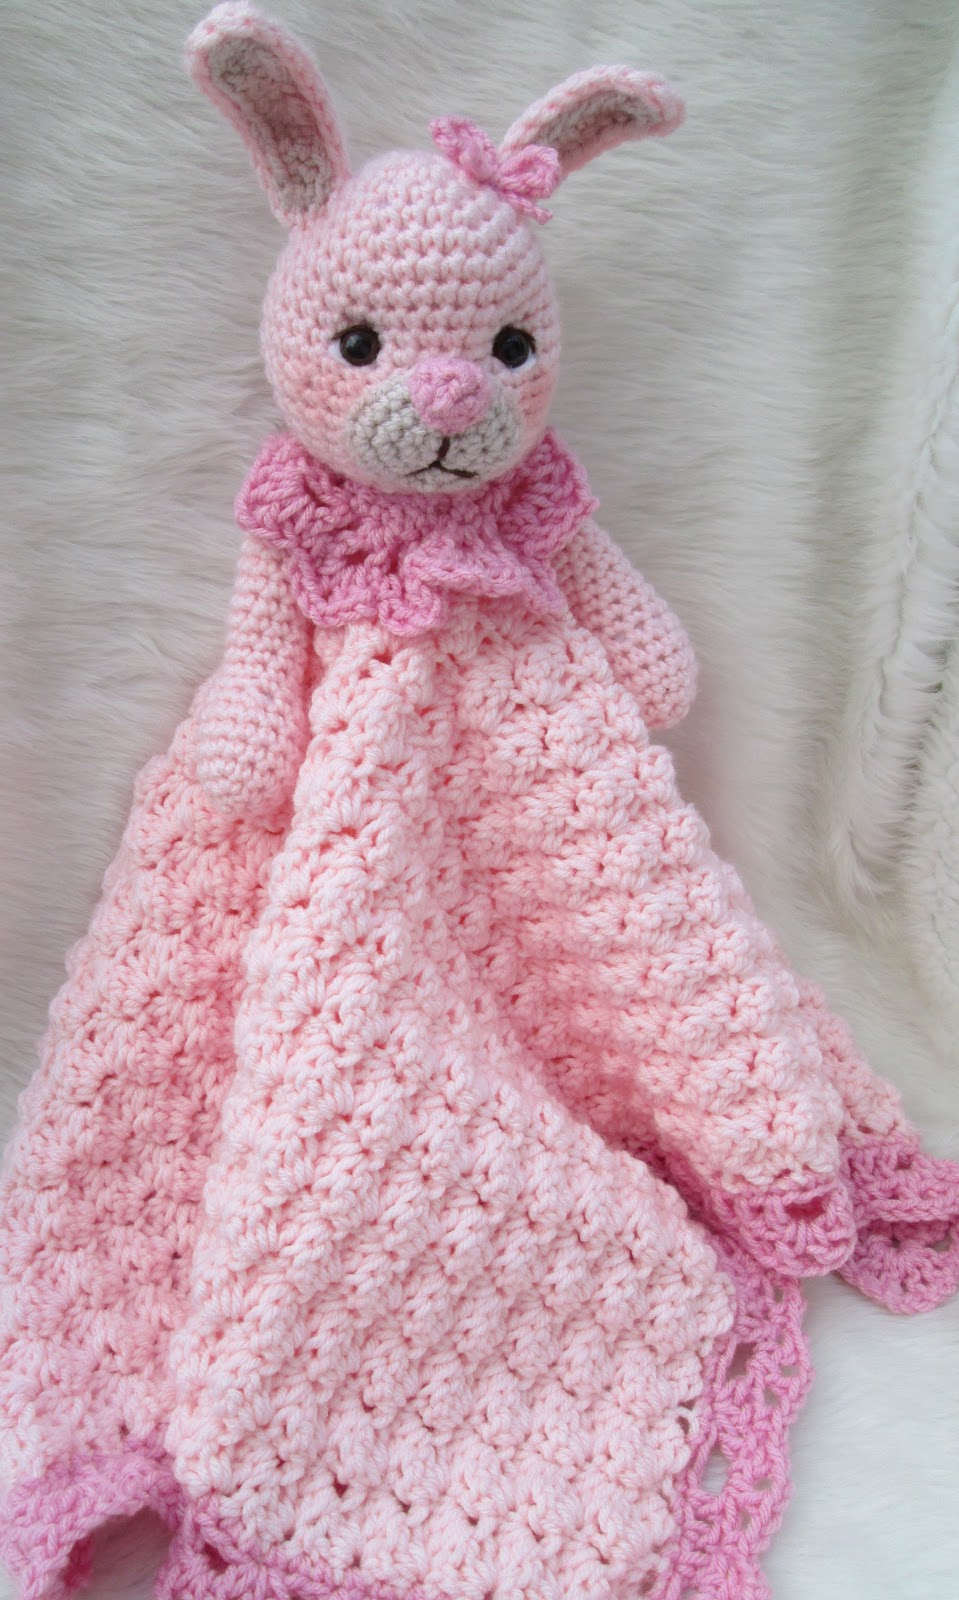 Free Crochet Pattern Huggy Blanket : Teris Blog: New Bunny Huggy Blanket Pattern